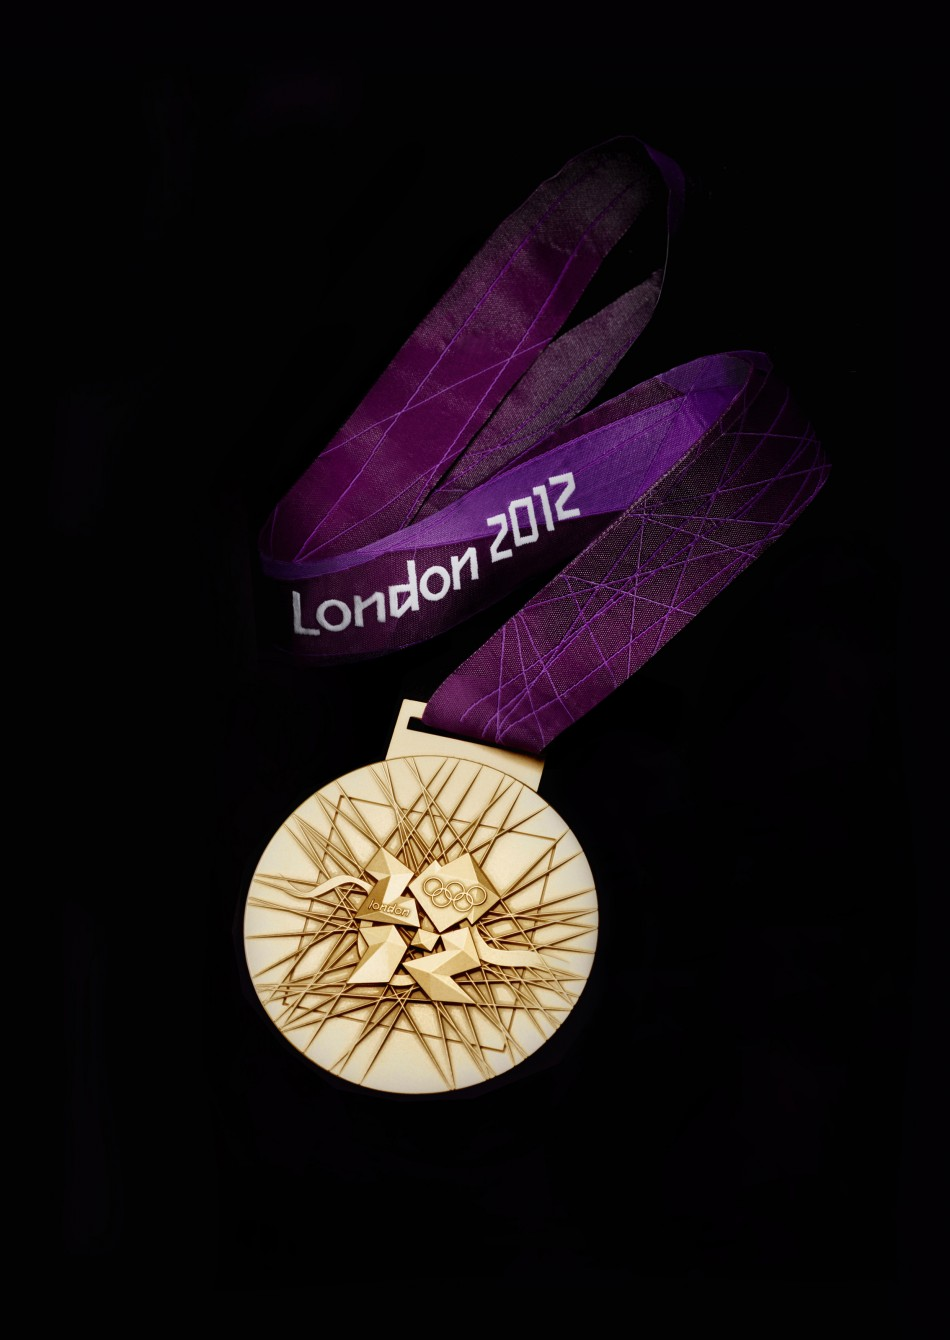 A London 2012 Olympic Games gold medal